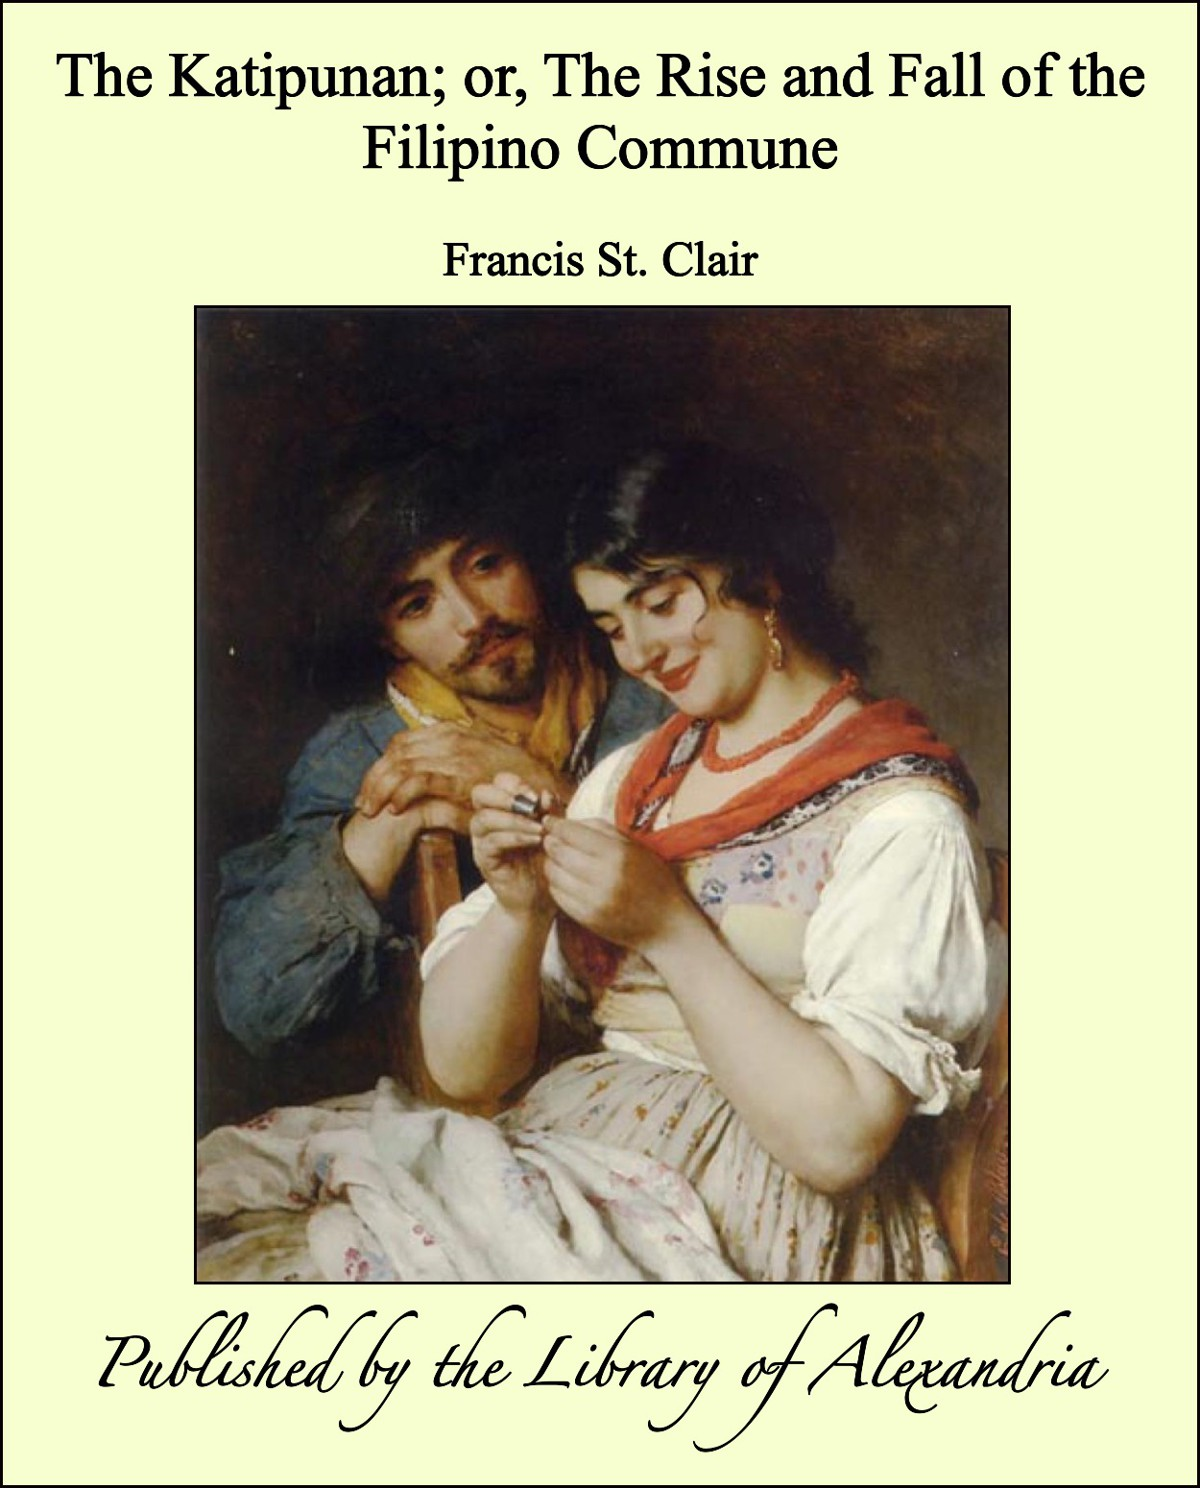 Francis St. Clair - The Katipunan; or, The Rise and Fall of the Filipino Commune